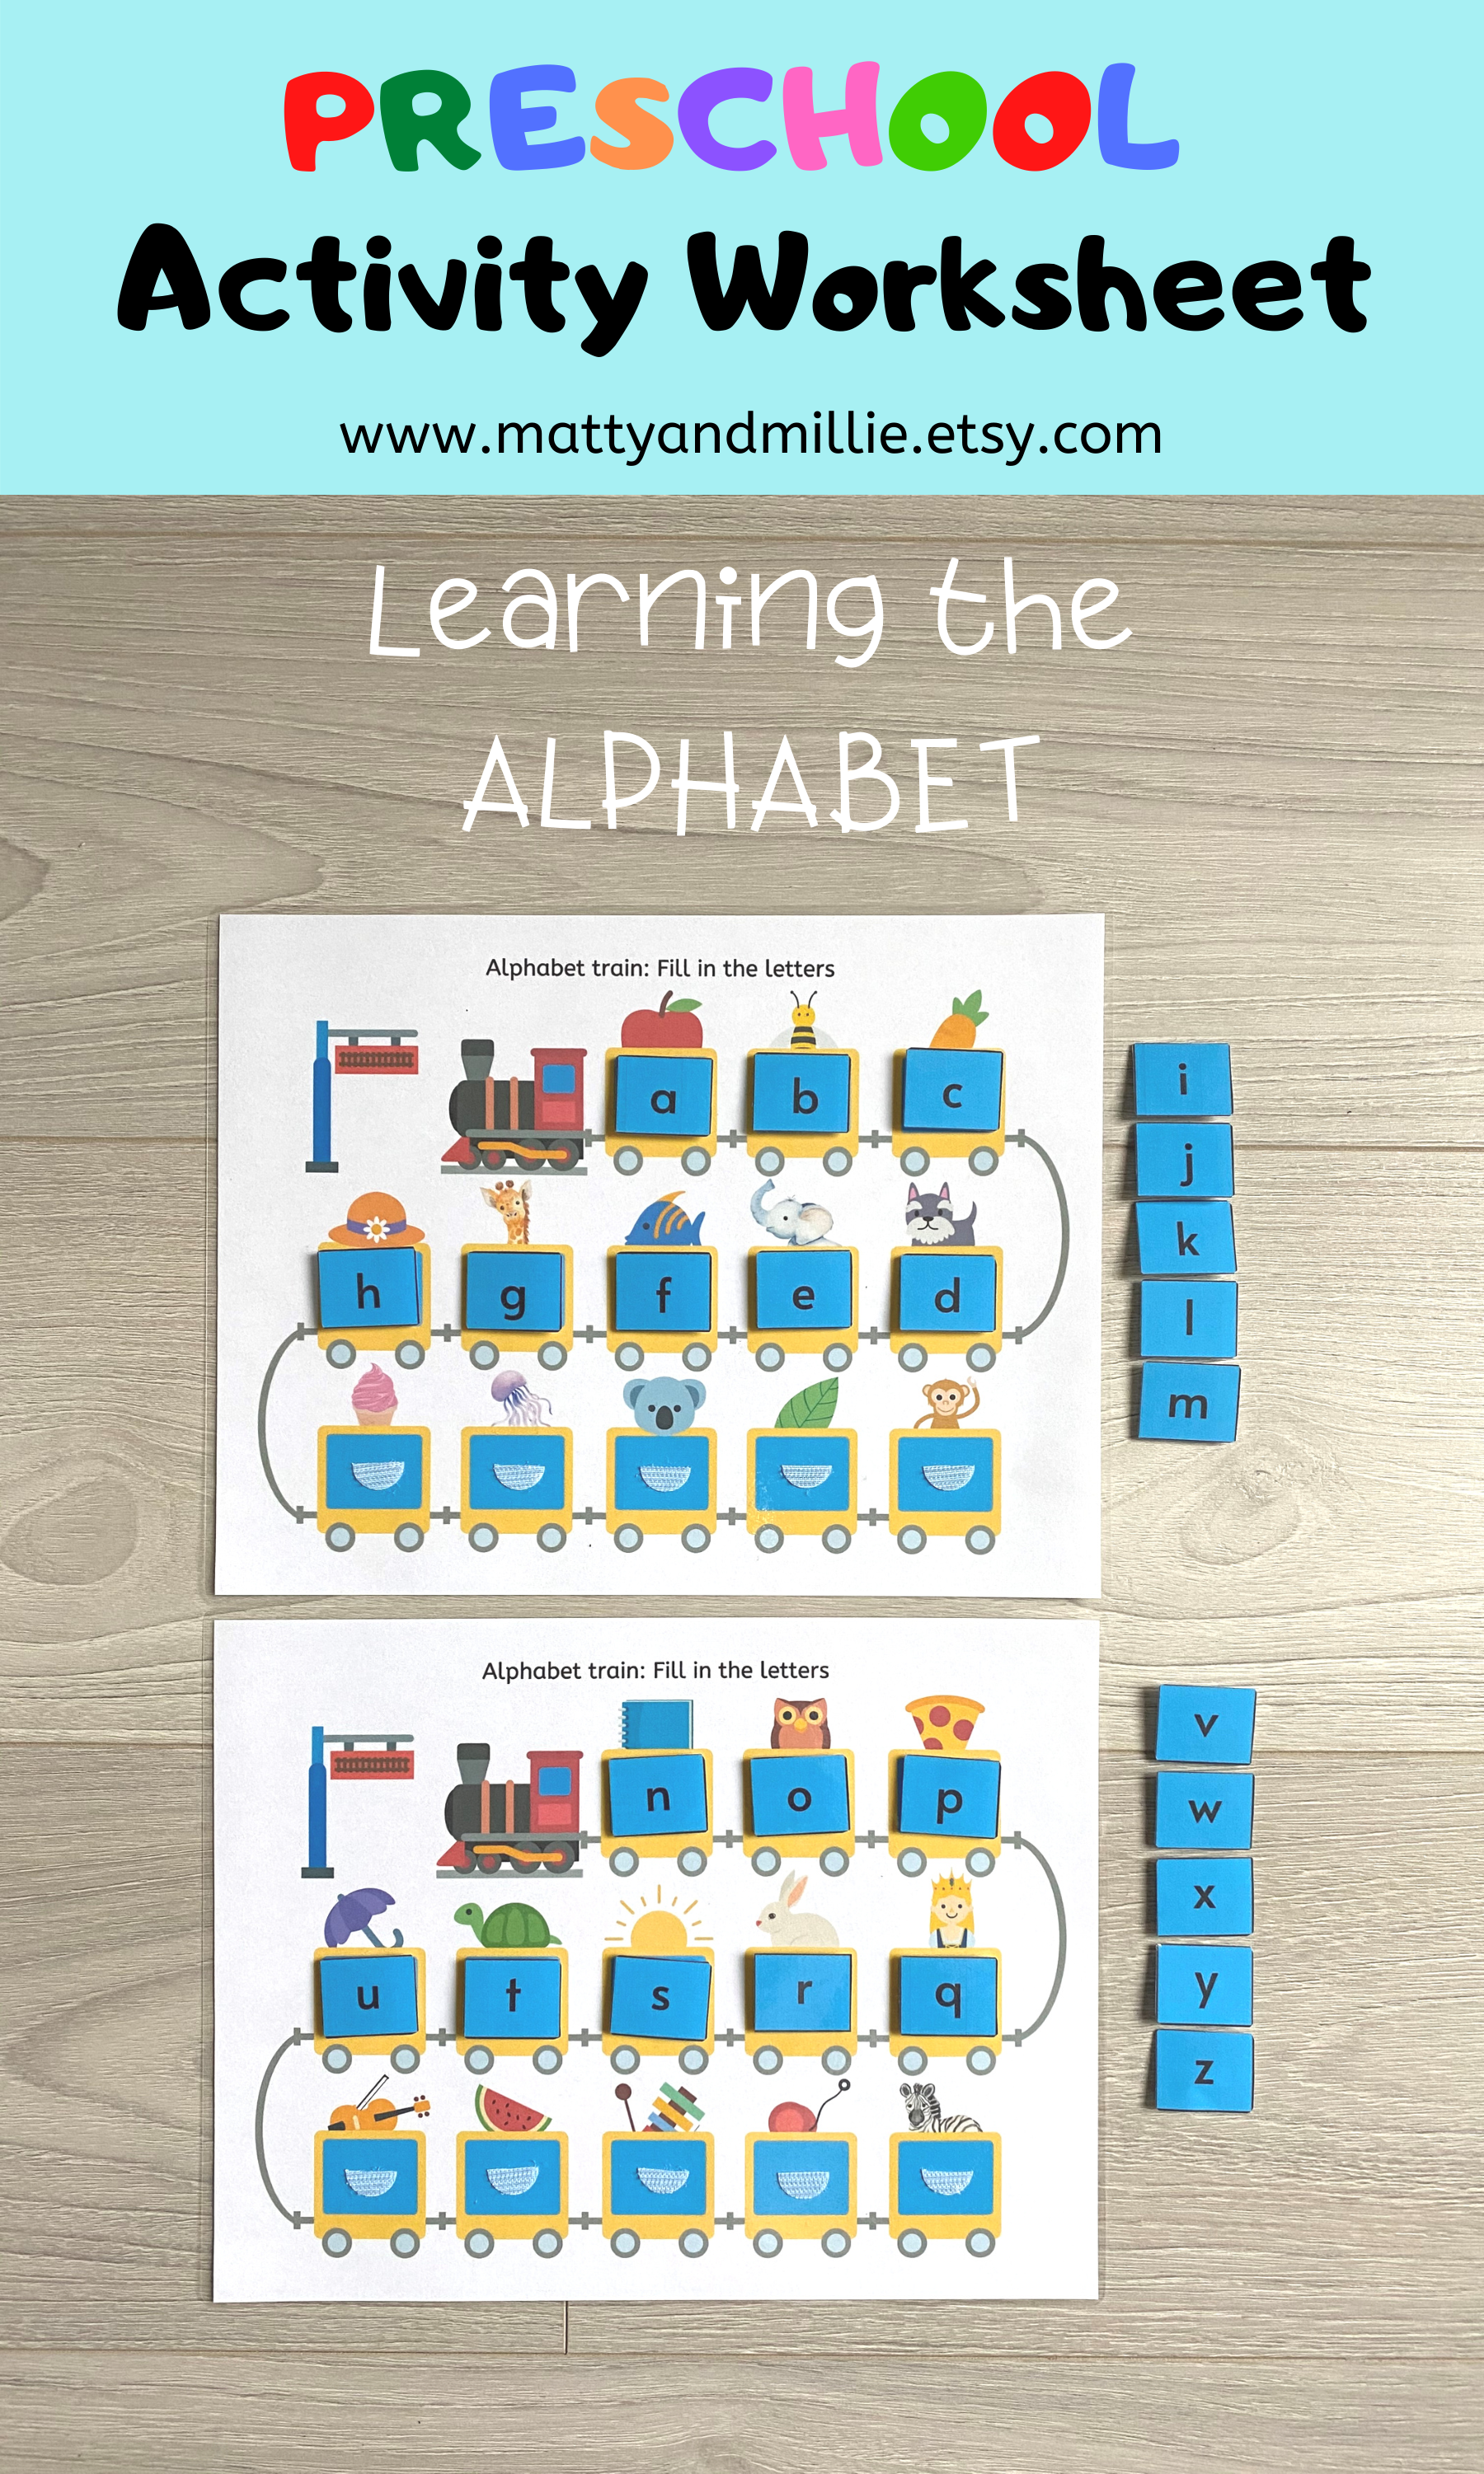 Alphabet Train Worksheet Busy Book Pages Preschool Busy Book Letters Activity File Folder Game Busy Binder Homeschool Worksheet Alphabet Train Alphabet Train Printable Learning The Alphabet [ 3000 x 1800 Pixel ]